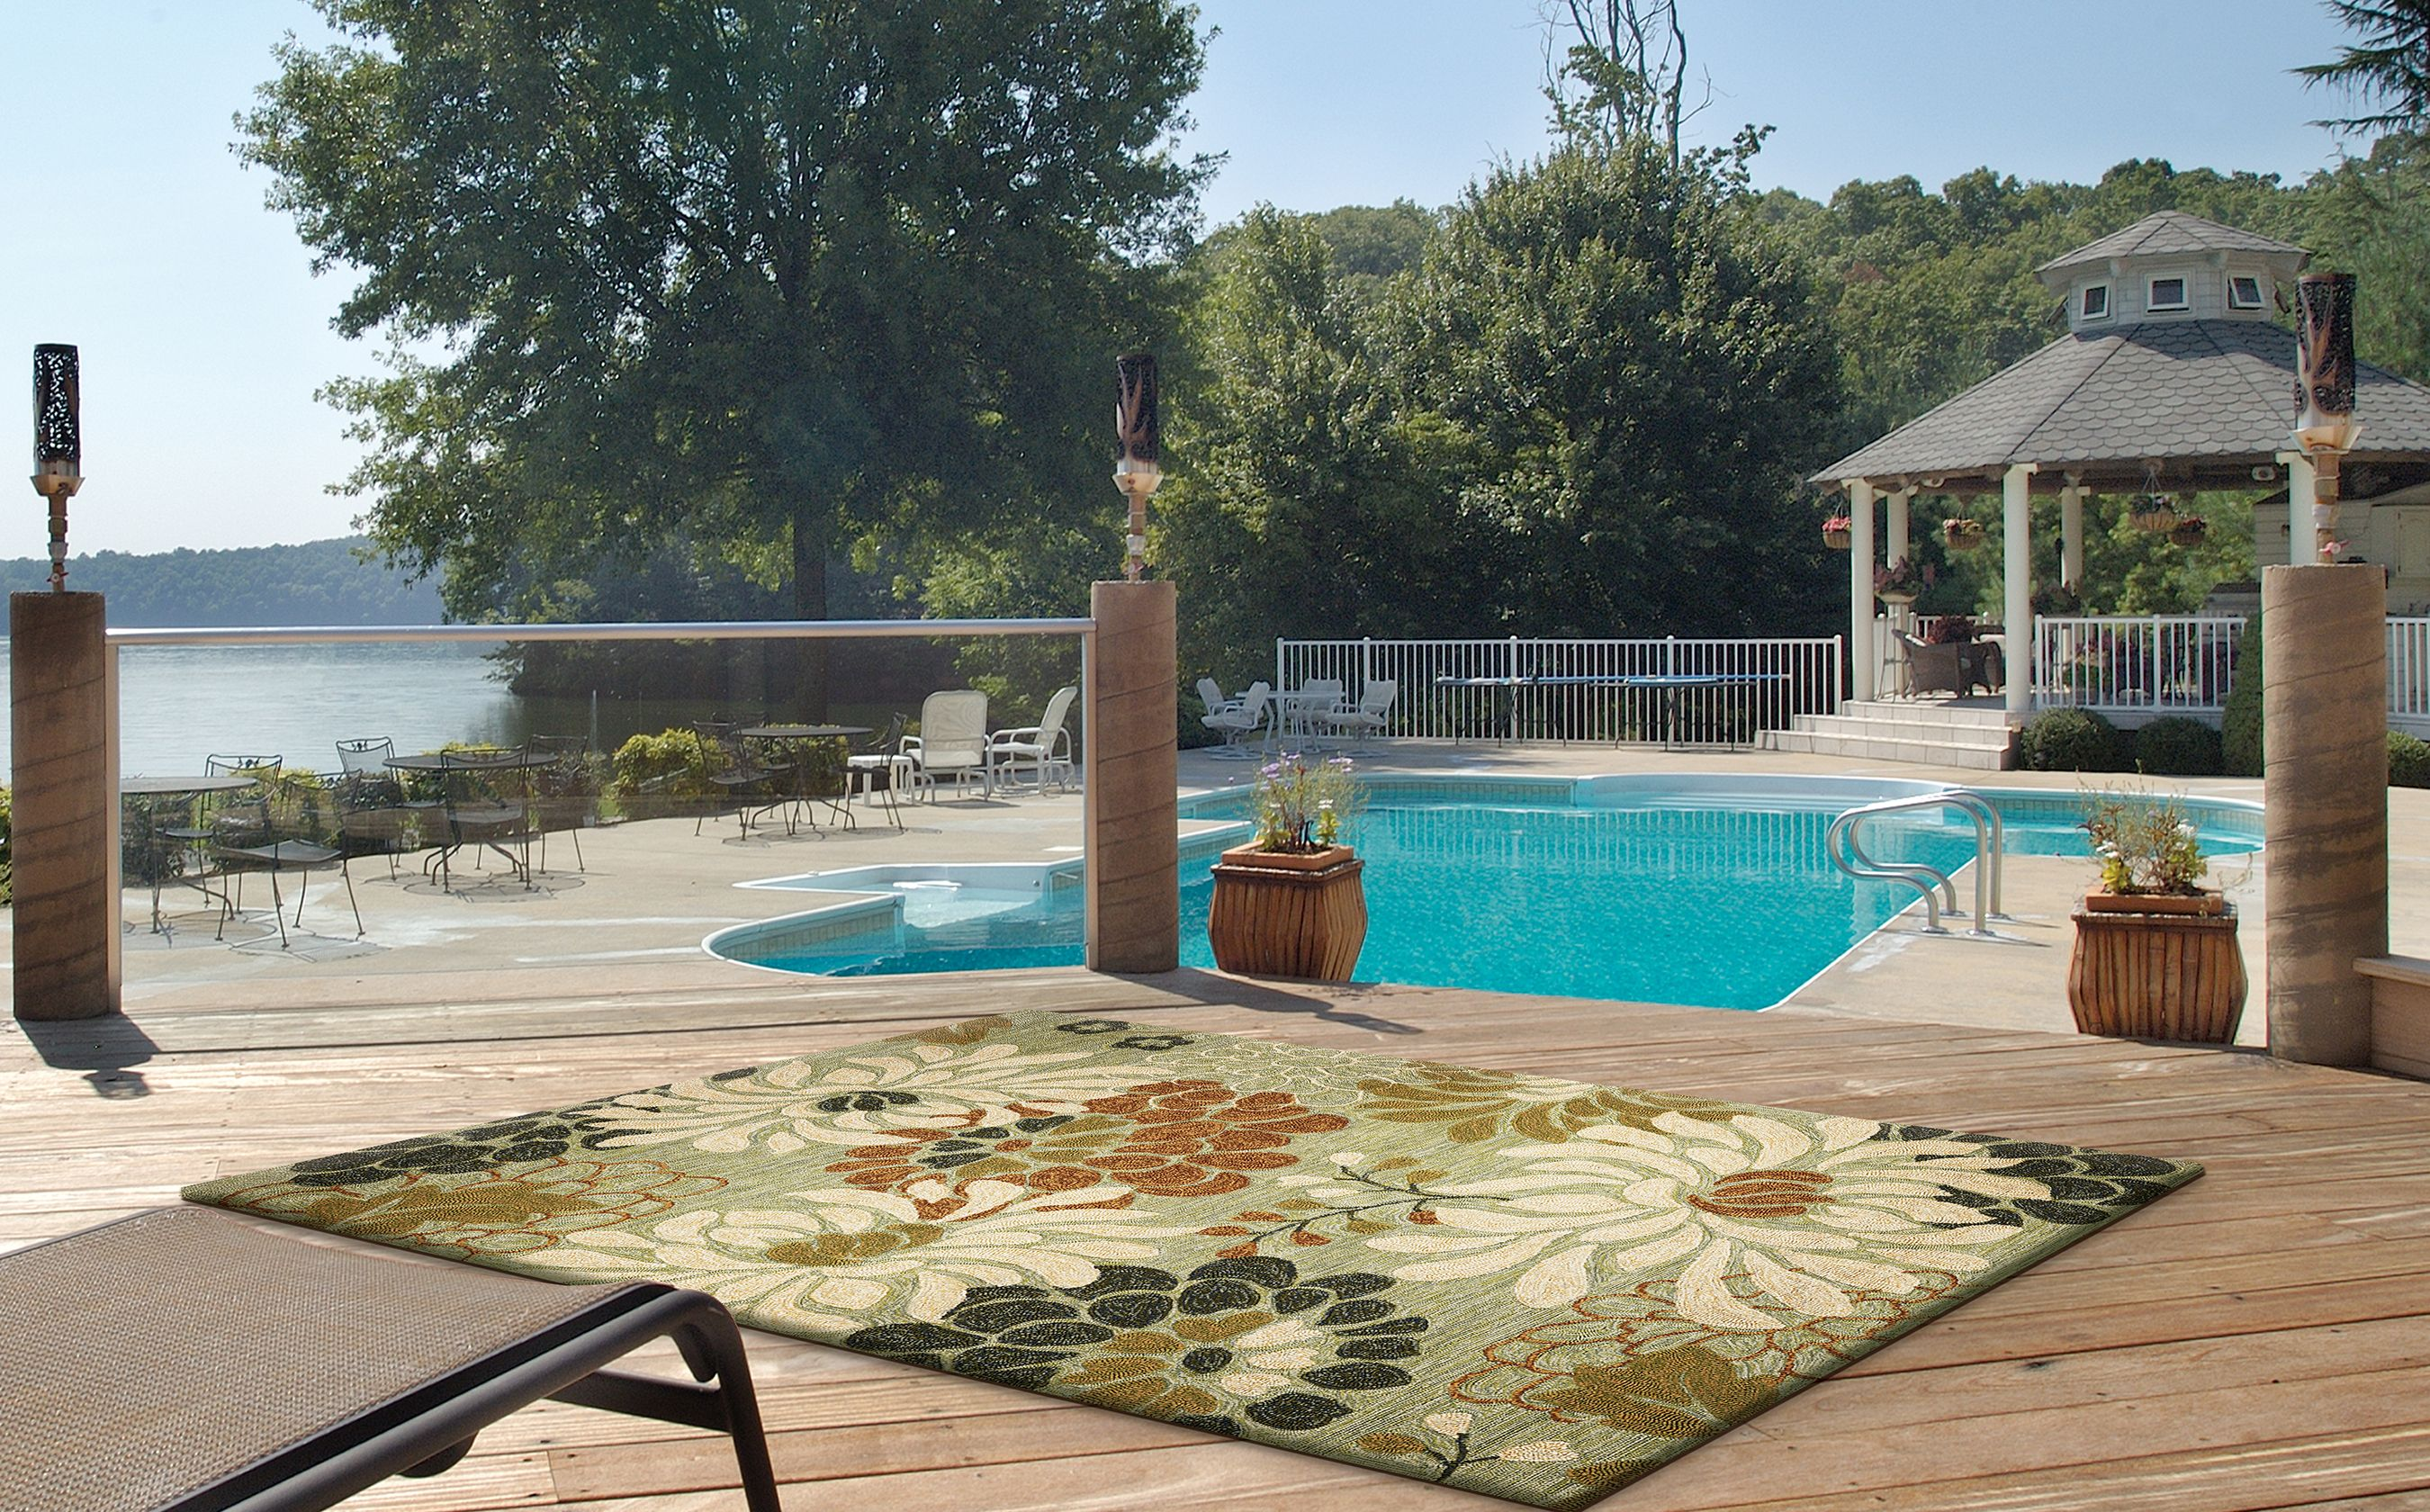 Liven Up Your Patio Or Lanai With A Beautiful Outdoor Rug Hundreds In Stock Daily And Multiple Sizes Available Indoor Outdoor Area Rugs Outdoor Rugs Outdoor